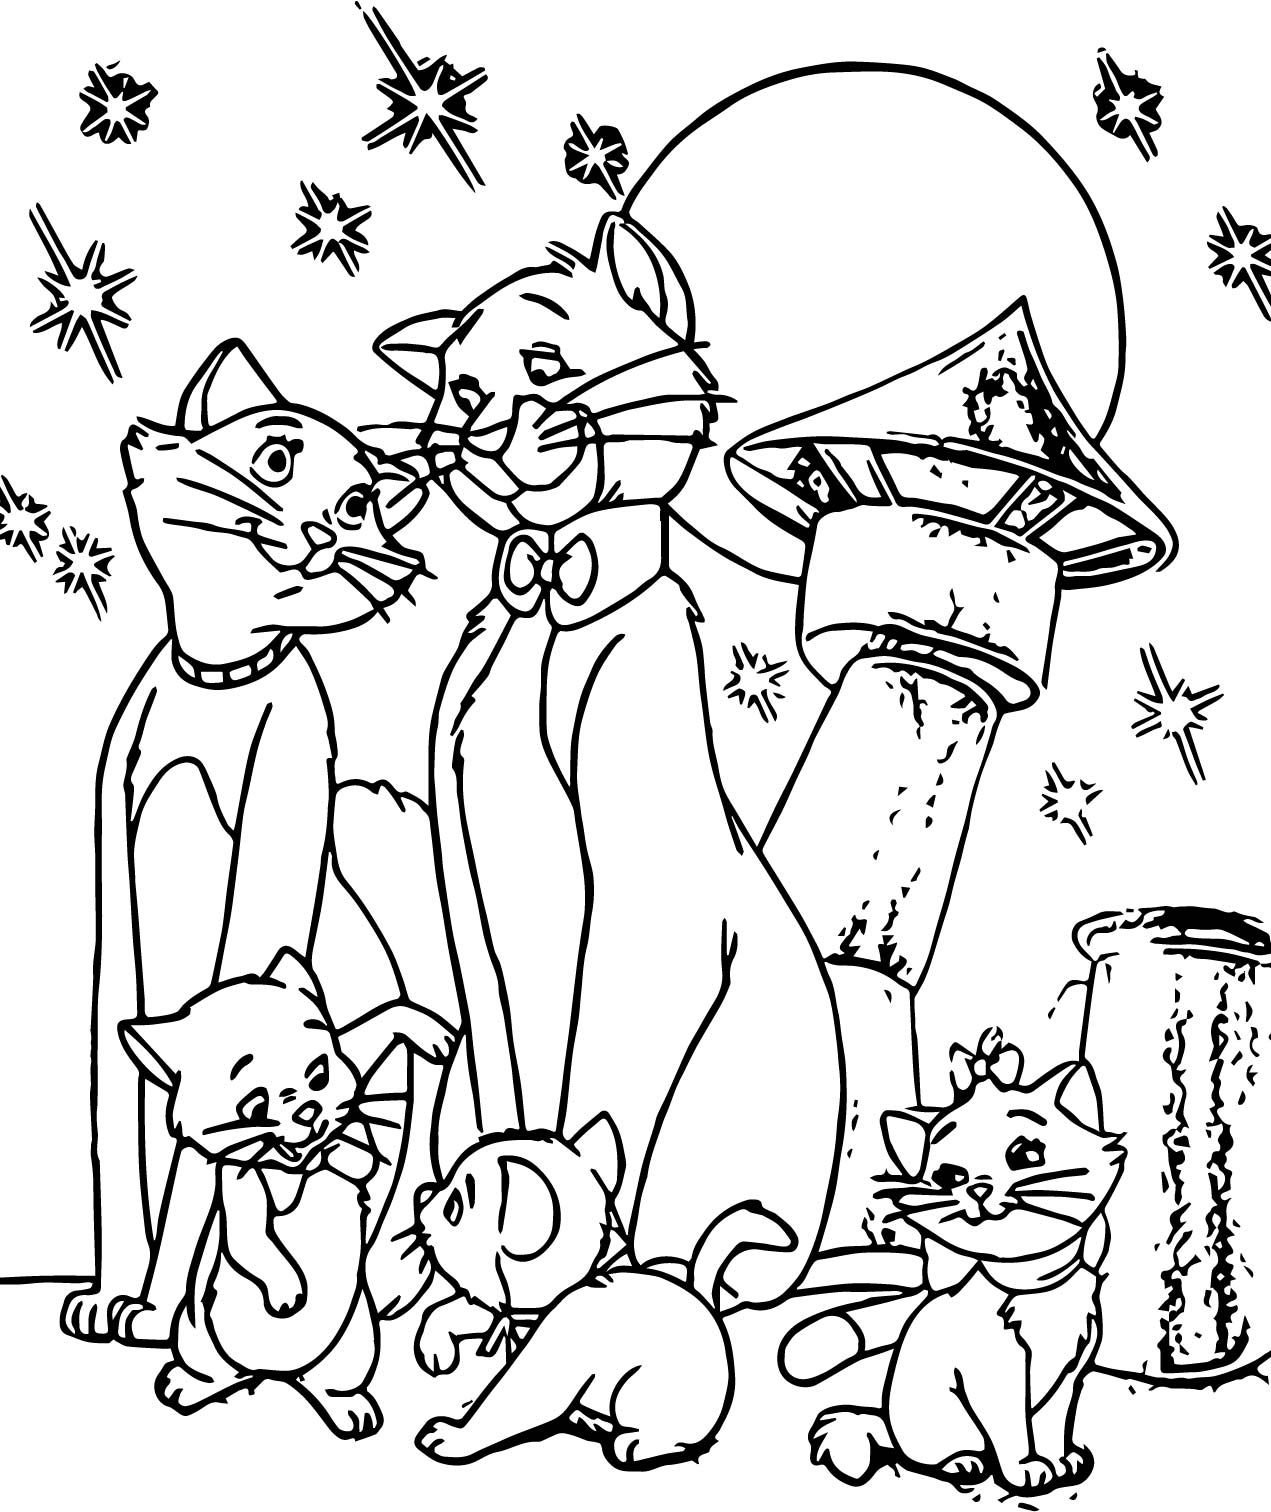 Nice Family Disney The Aristocats Coloring Page Owl Coloring Pages Unicorn Coloring Pages Coloring Pages